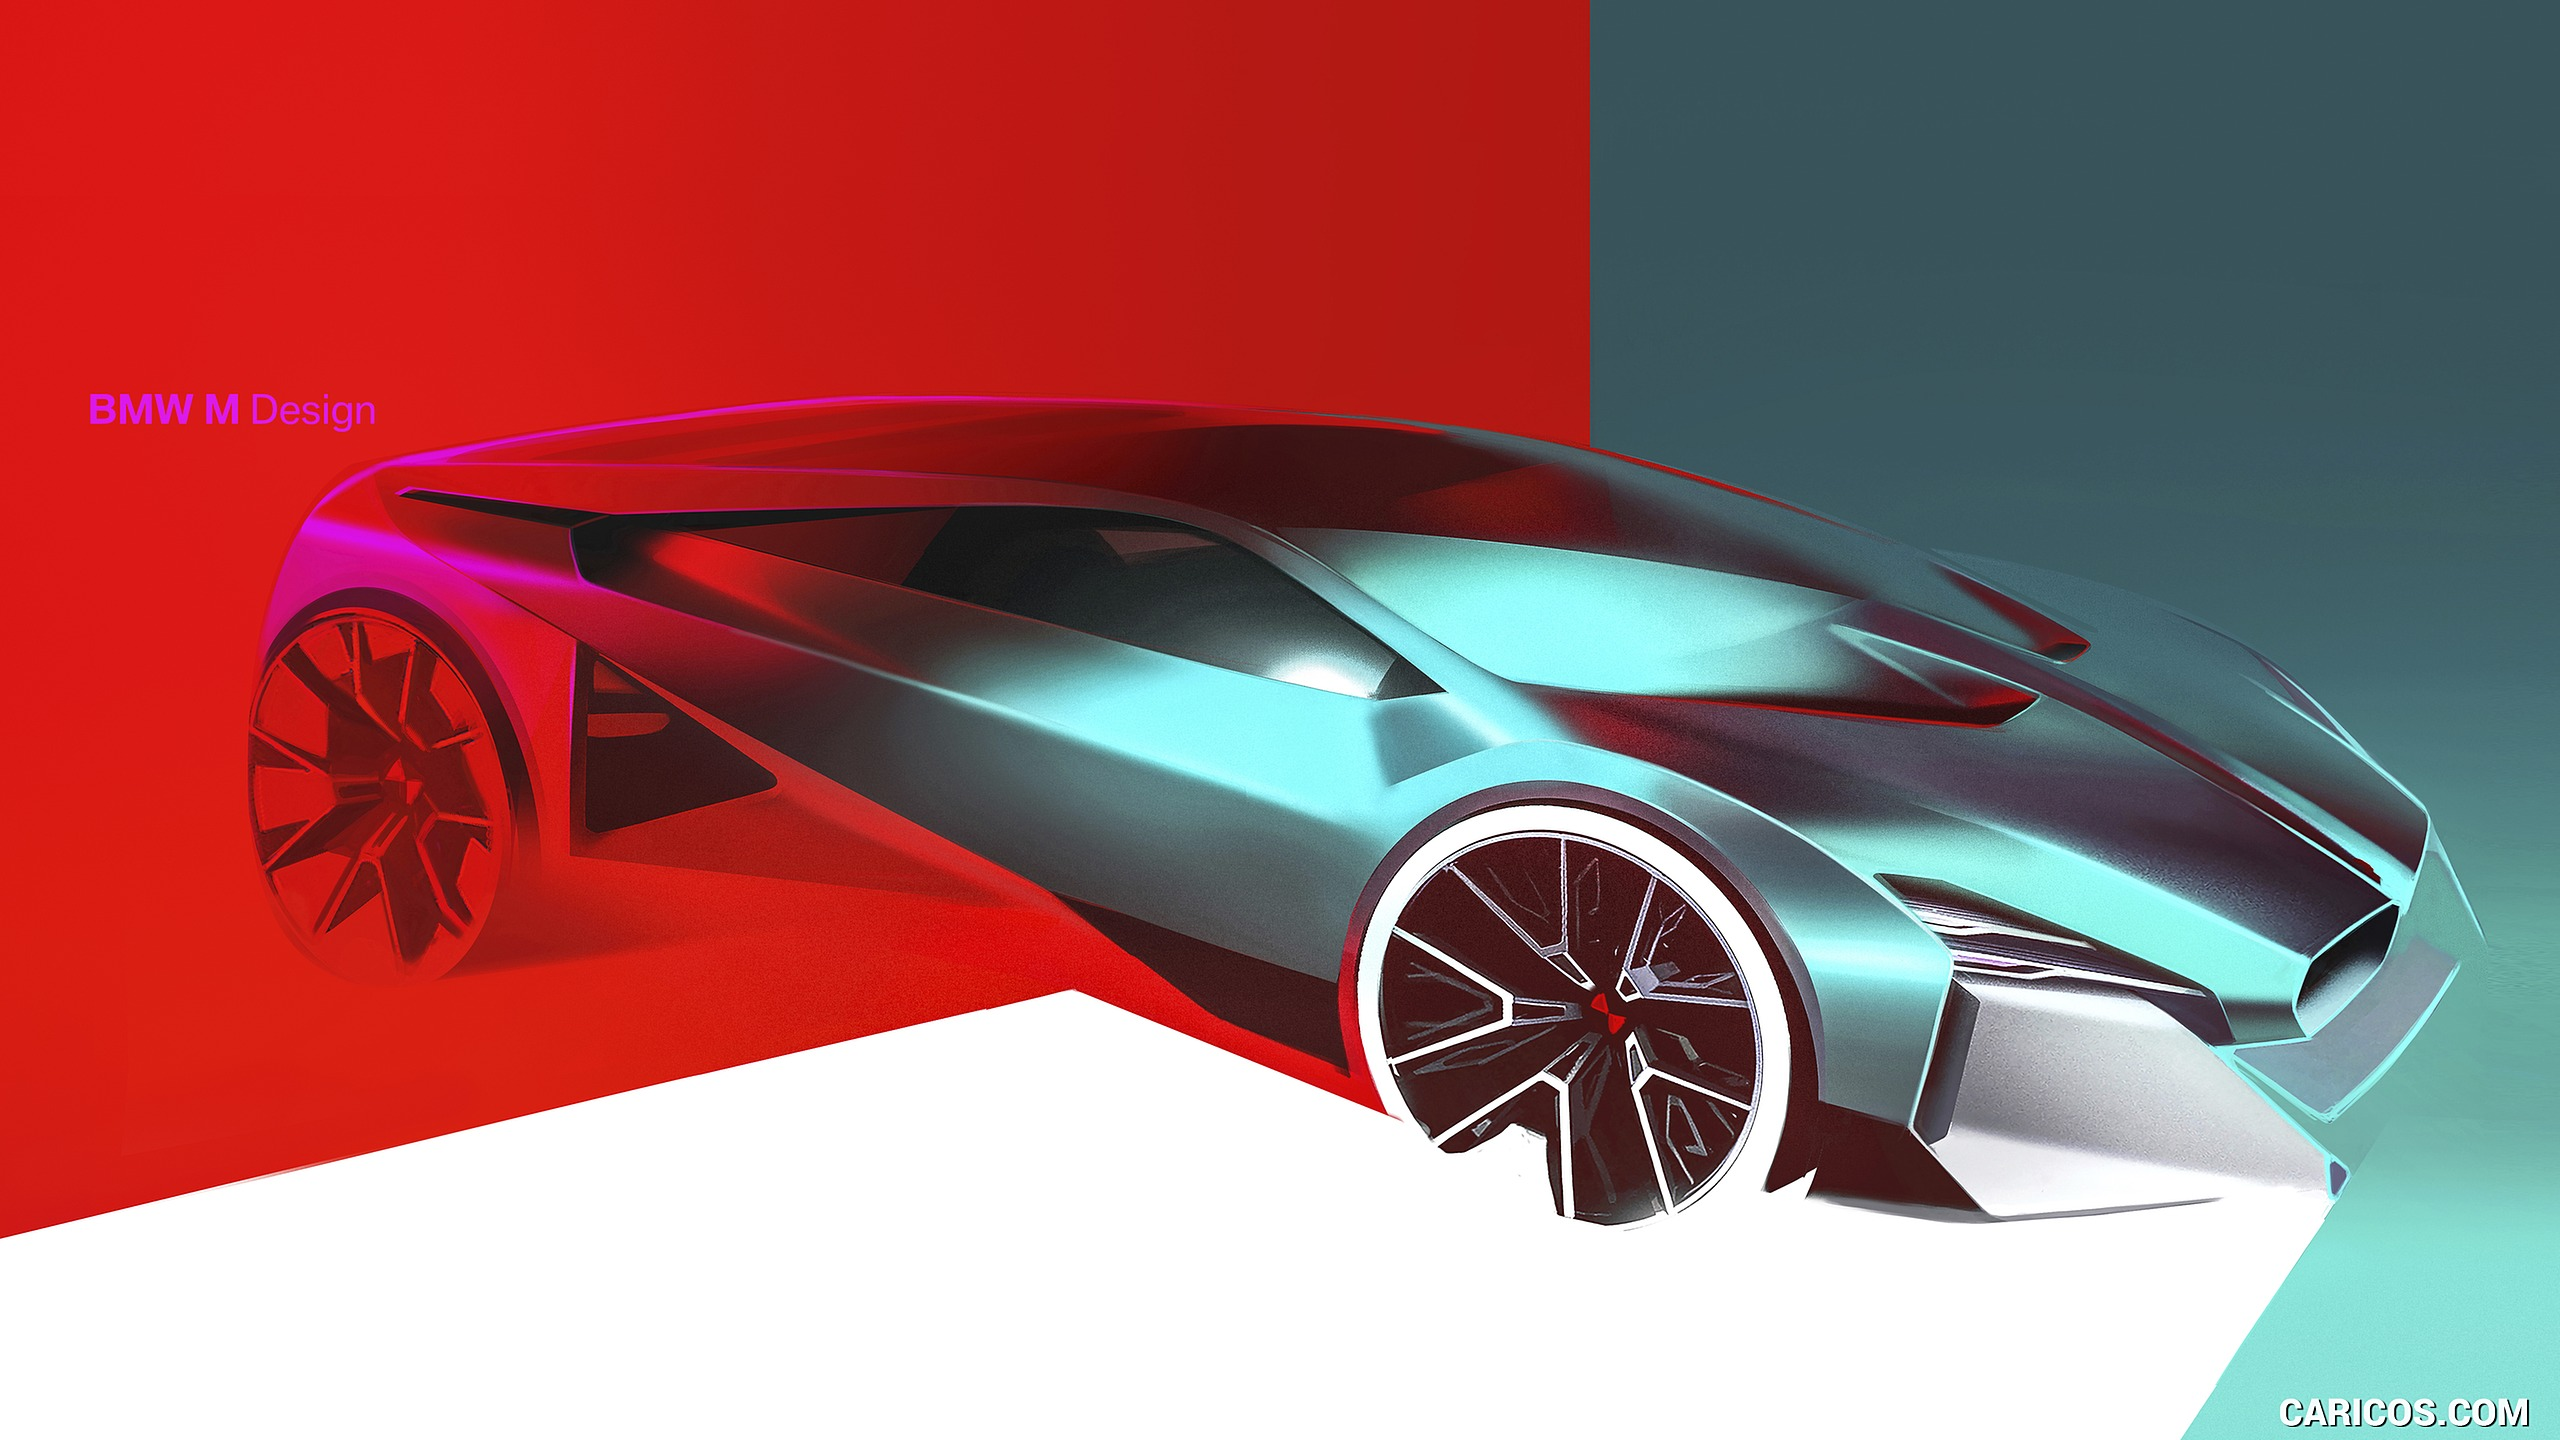 2019 BMW Vision M Next   Design Sketch HD Wallpaper 60 2560x1440